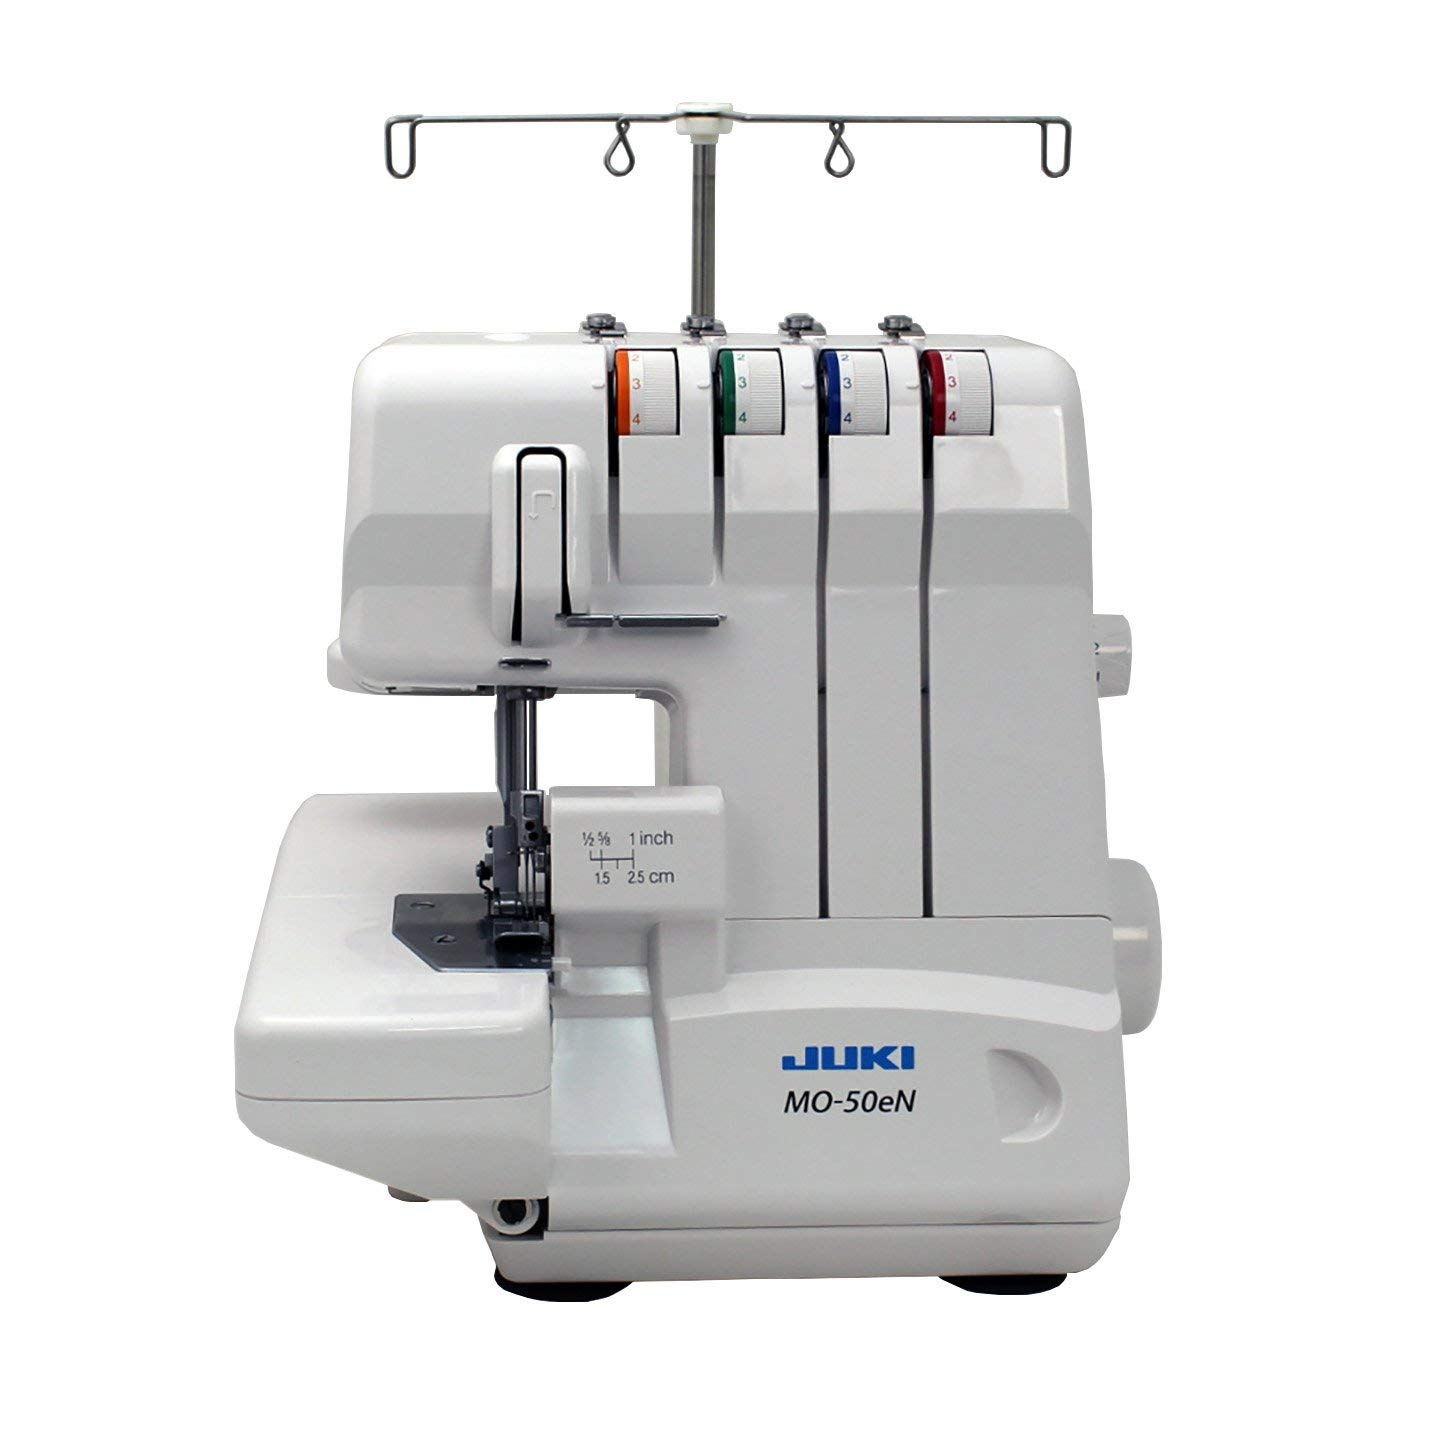 Top 6 Best Serger Sewing Machine (2020 Reviews & Buying Guide) 6